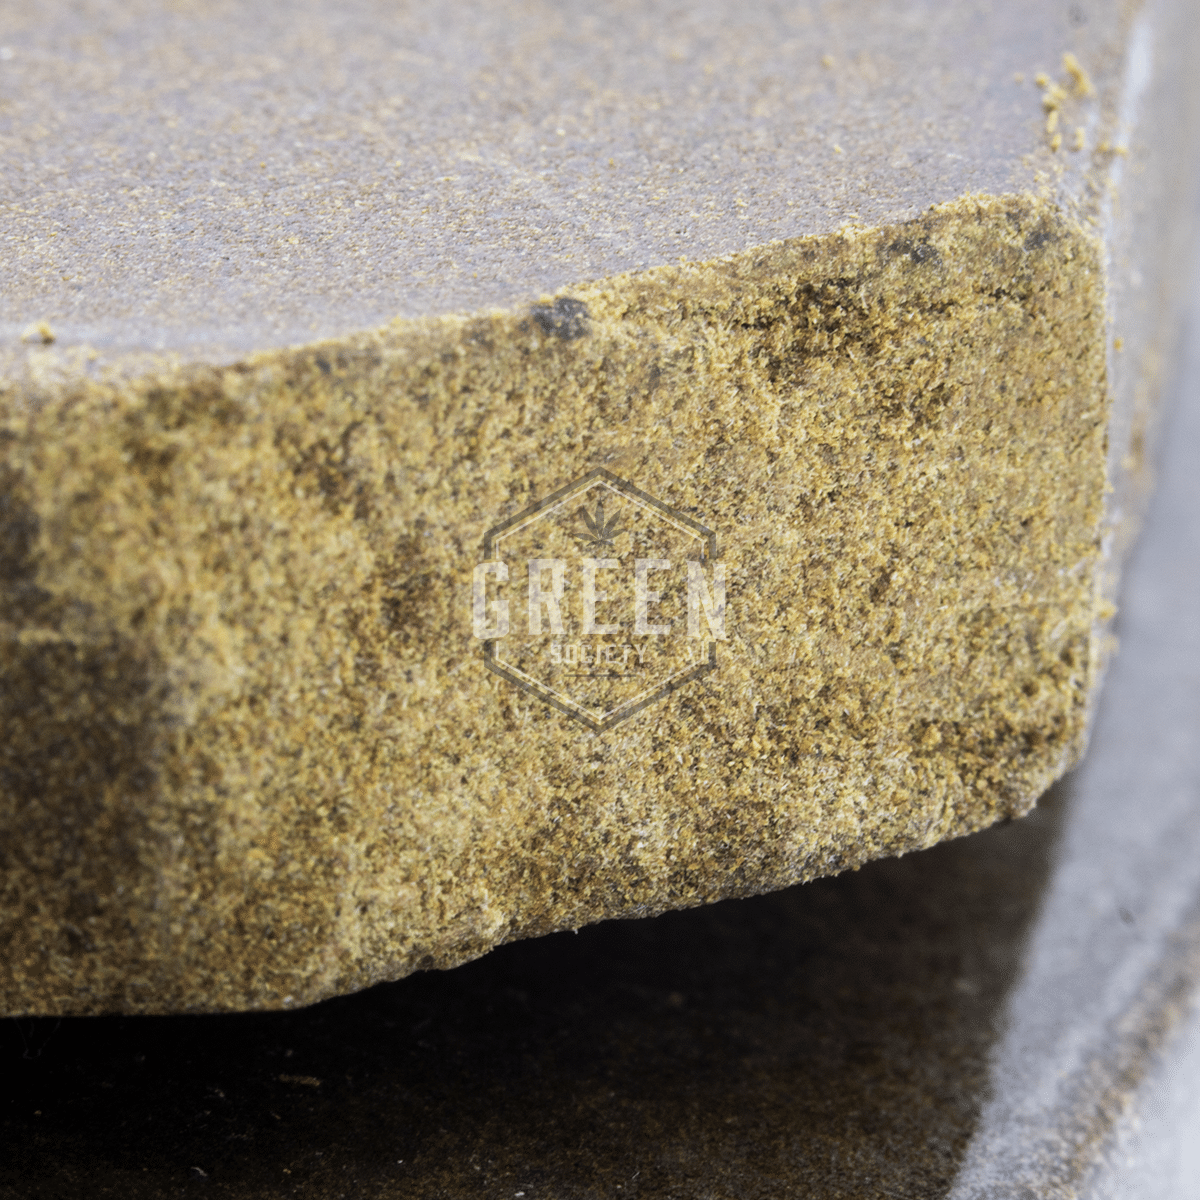 Moroccan Rolex Hash by Green Society - Image © 2018 Green Society. All Rights Reserved.